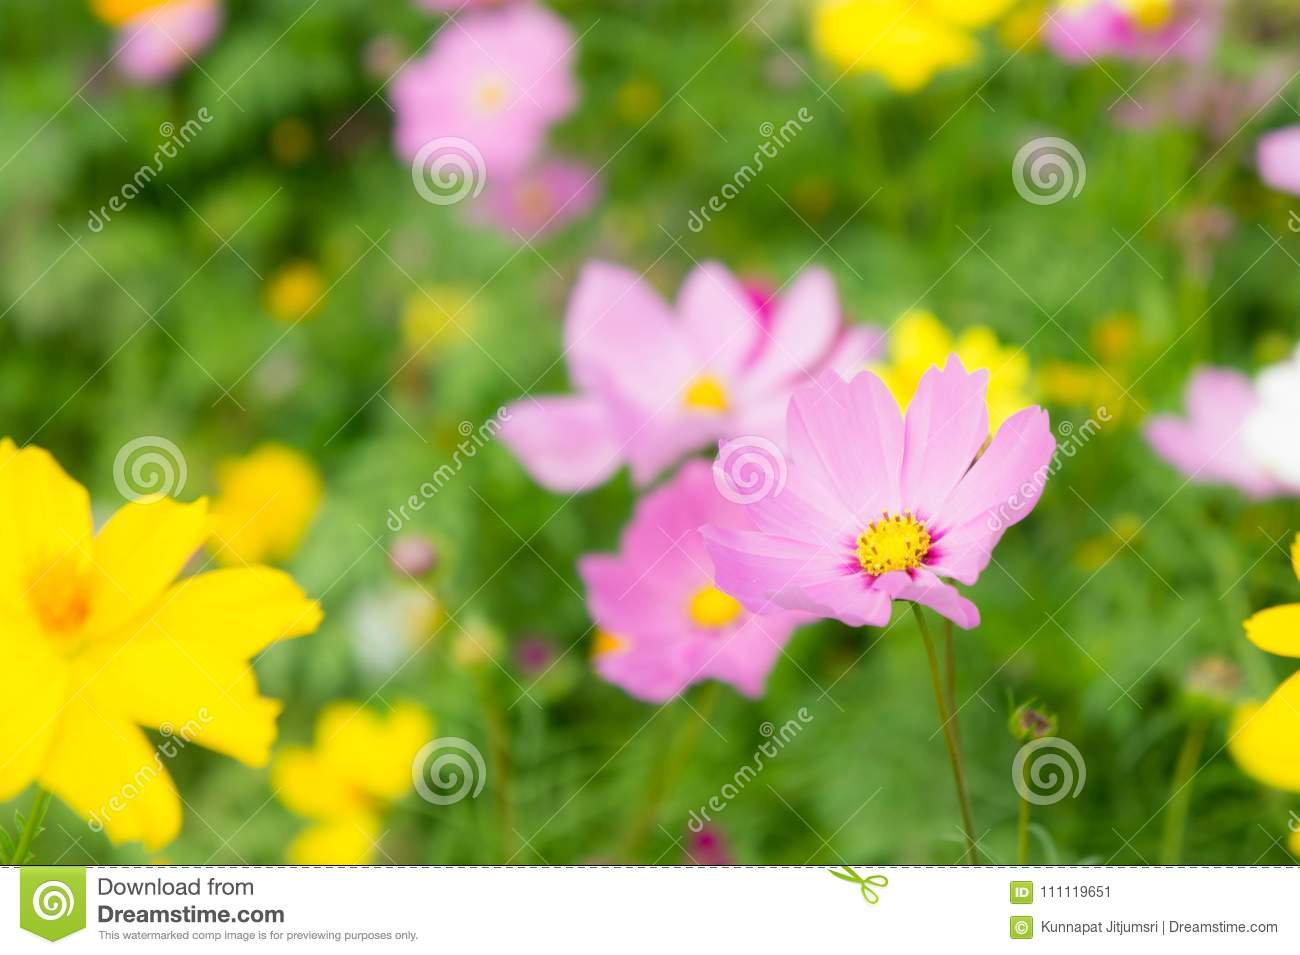 The Nice Day And Nice Flowers Cosmos Colorful On Field Pink Flowers     Royalty Free Stock Photo